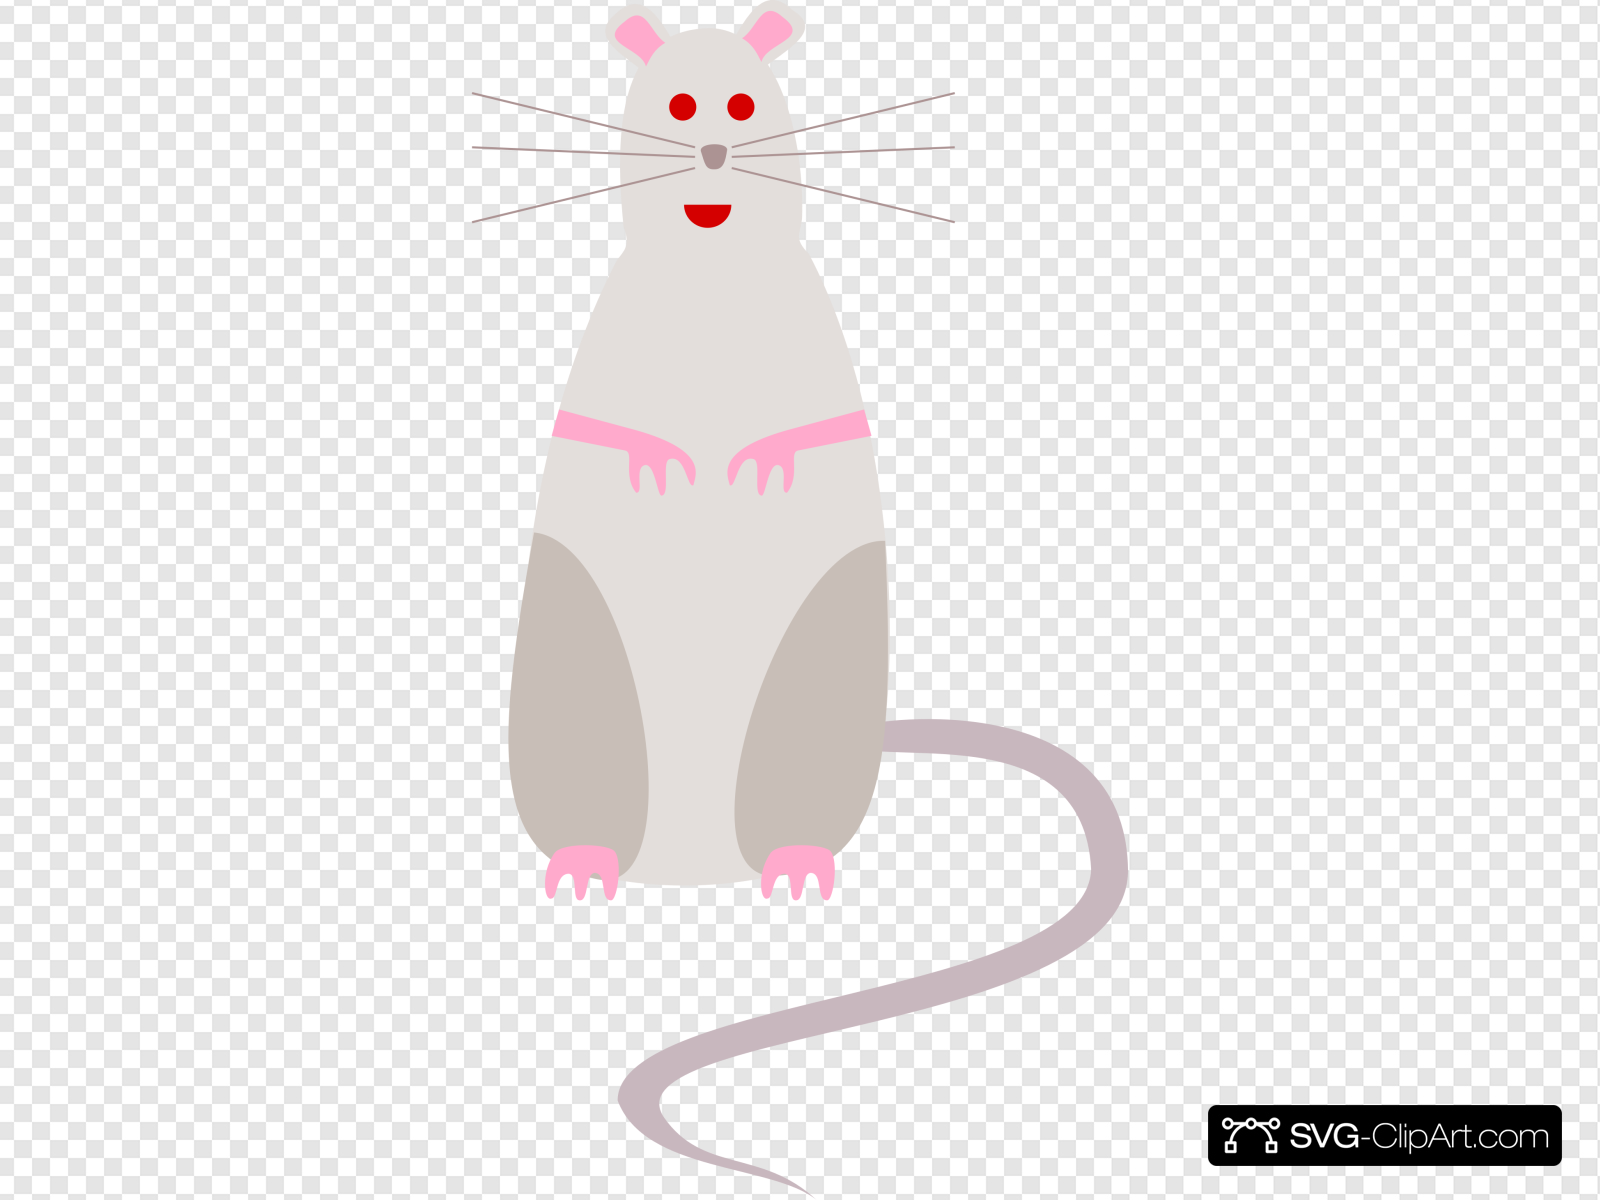 Rat Clip art, Icon and SVG.